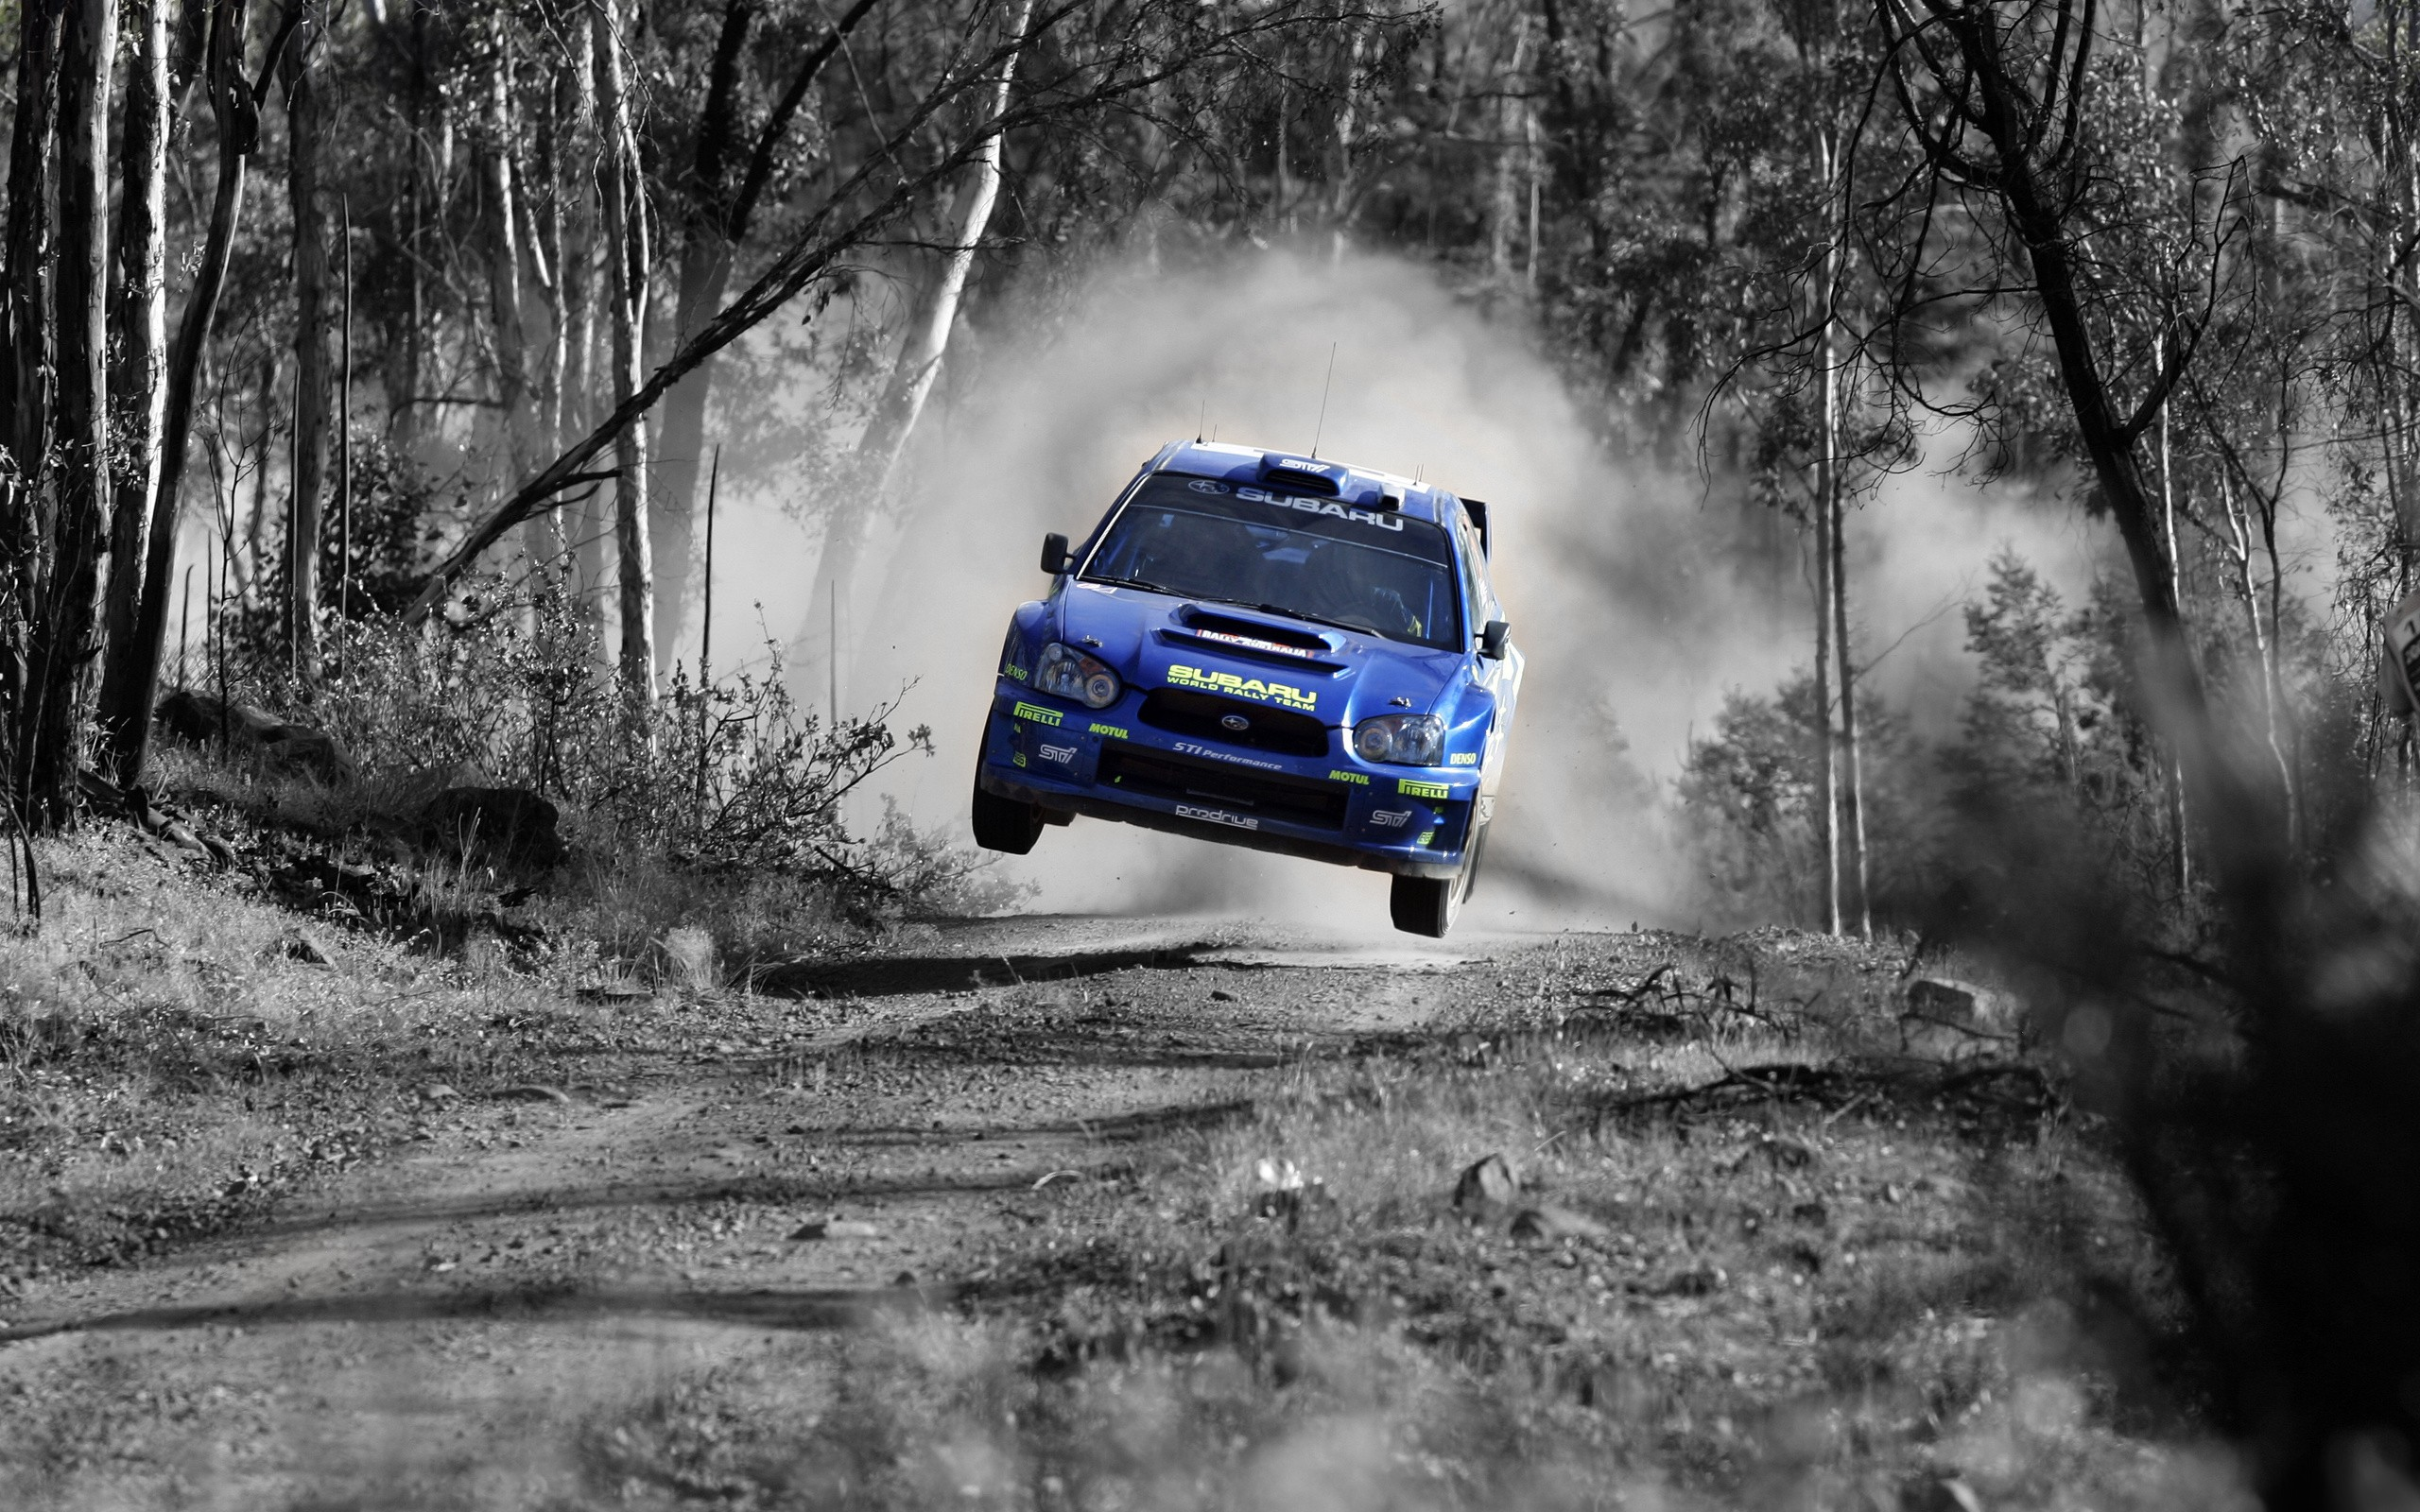 A Small Car >> Cars jumping rally subaru impreza wrc selective coloring rally cars wallpaper | 2560x1600 ...